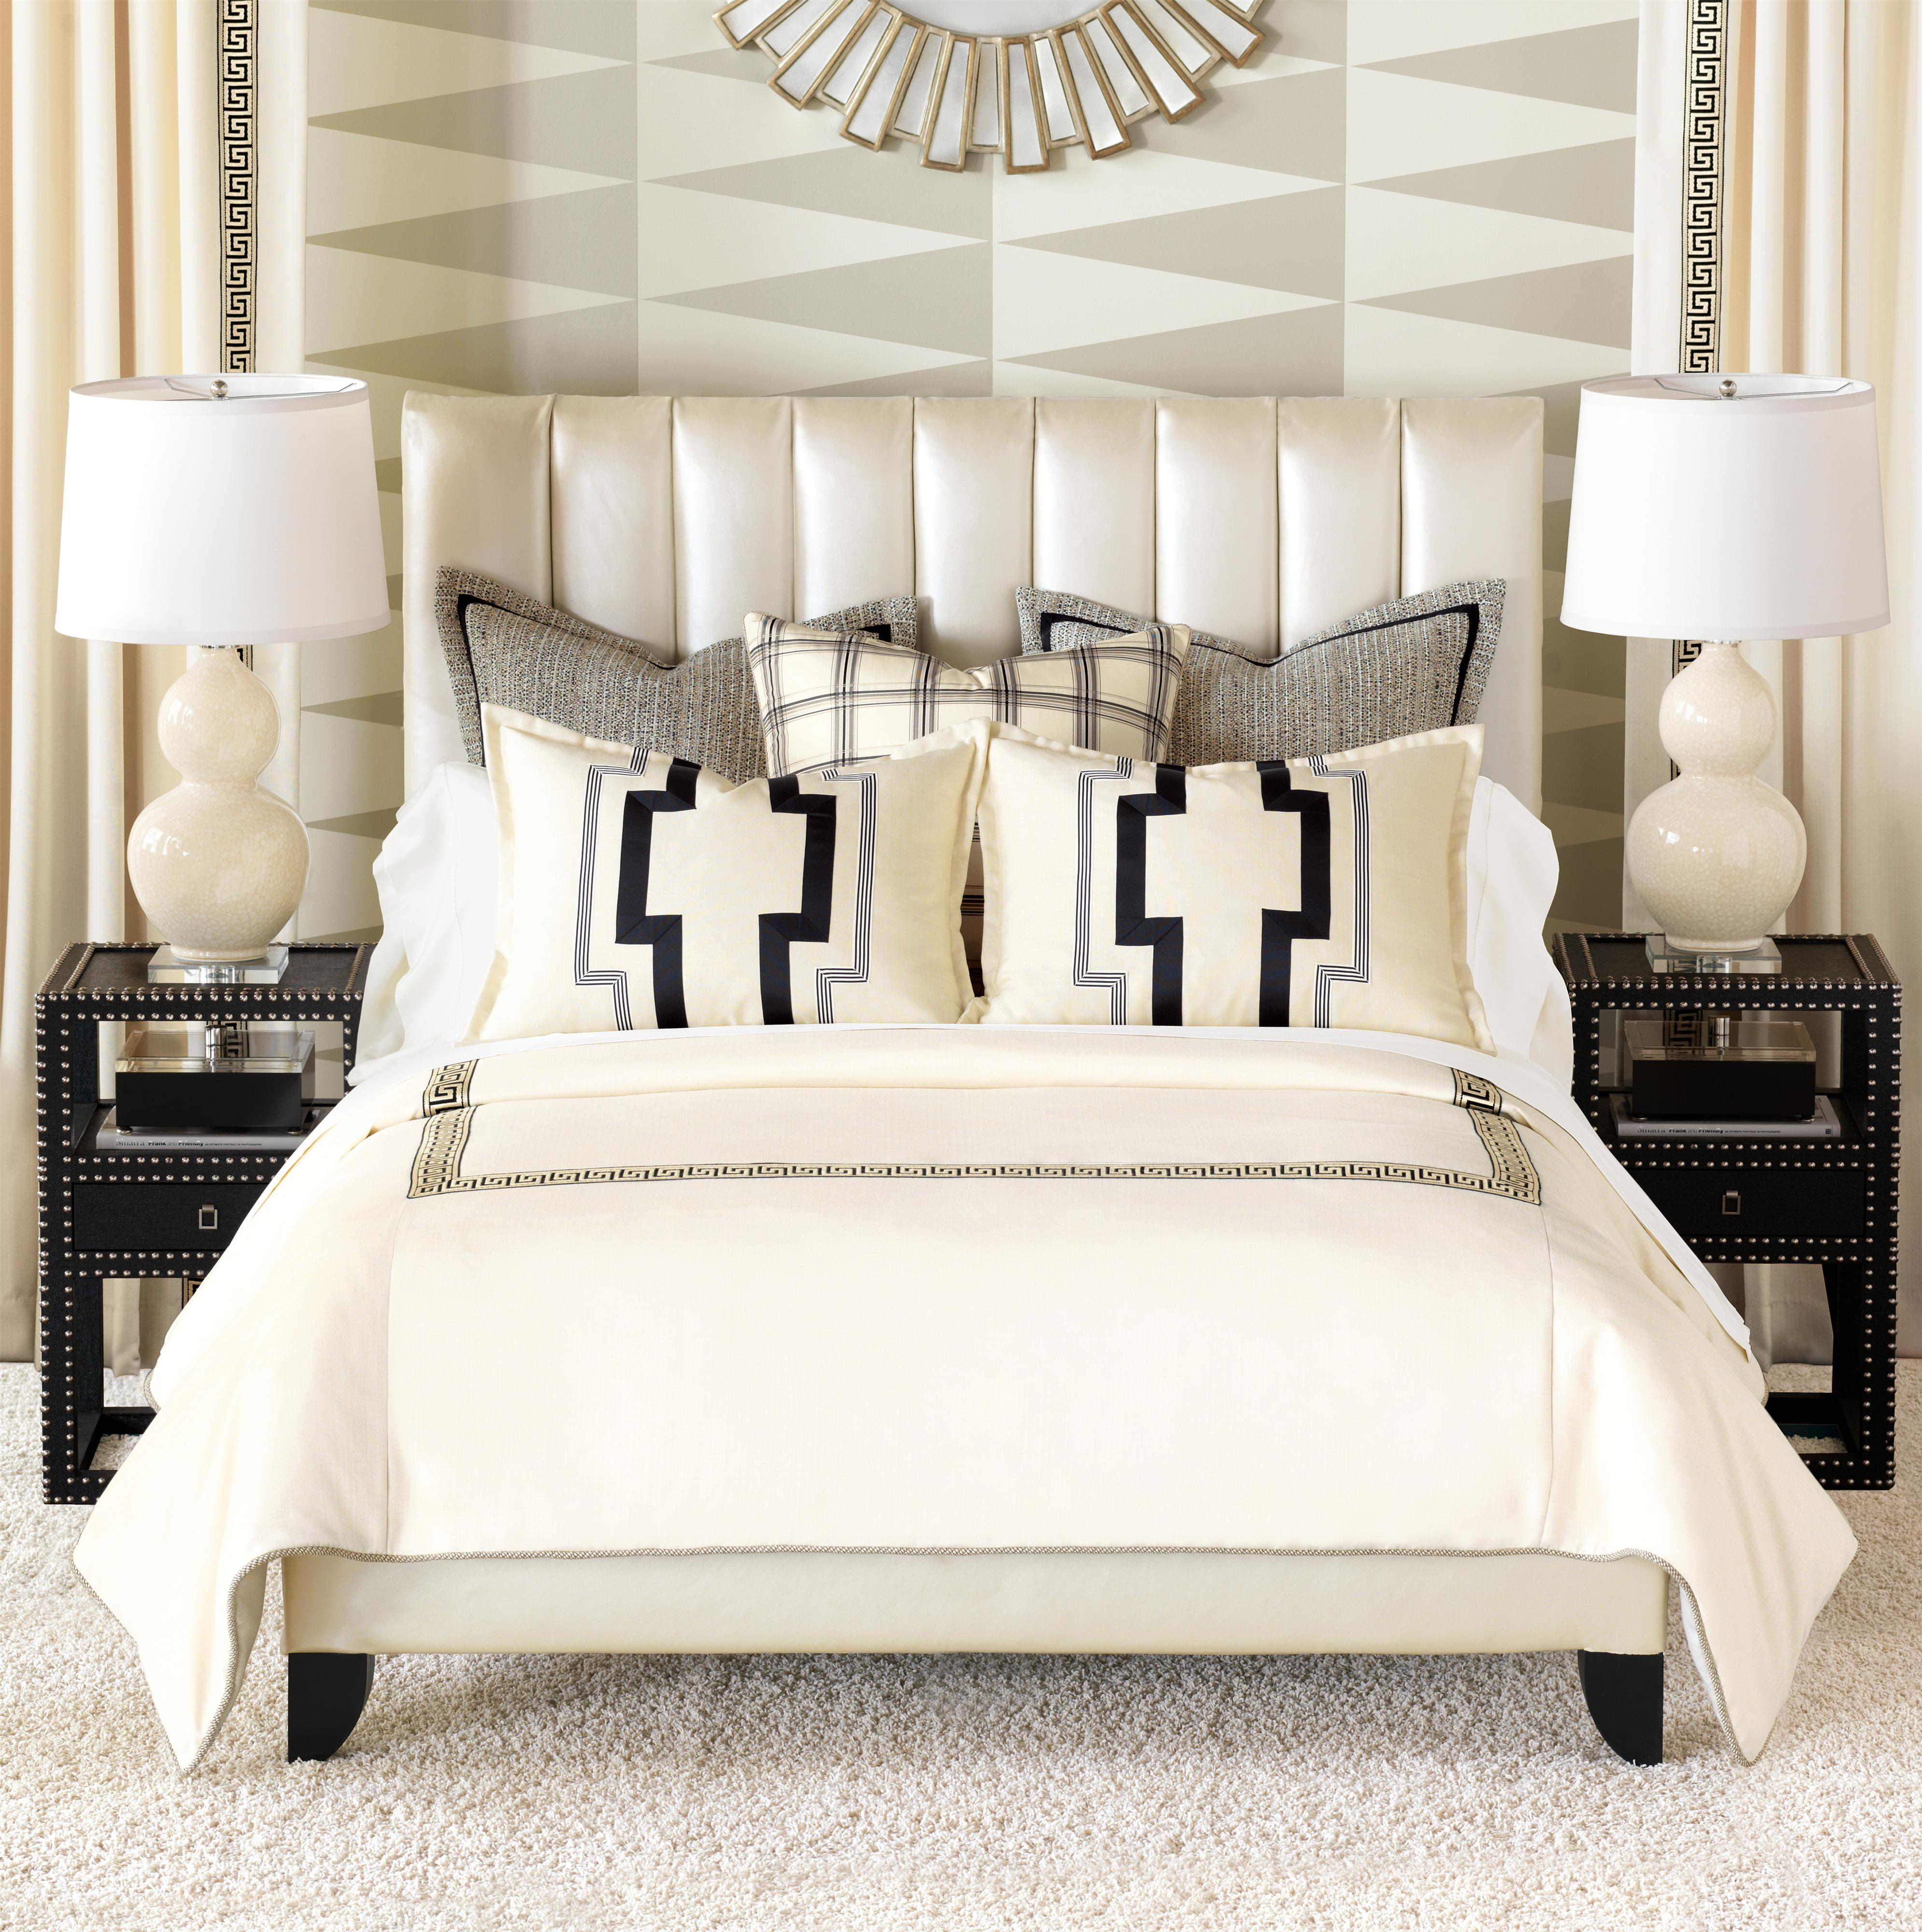 Abernathy Cal King Button-Tufted Comforter by Eastern Accents at Michael Alan Furniture & Design